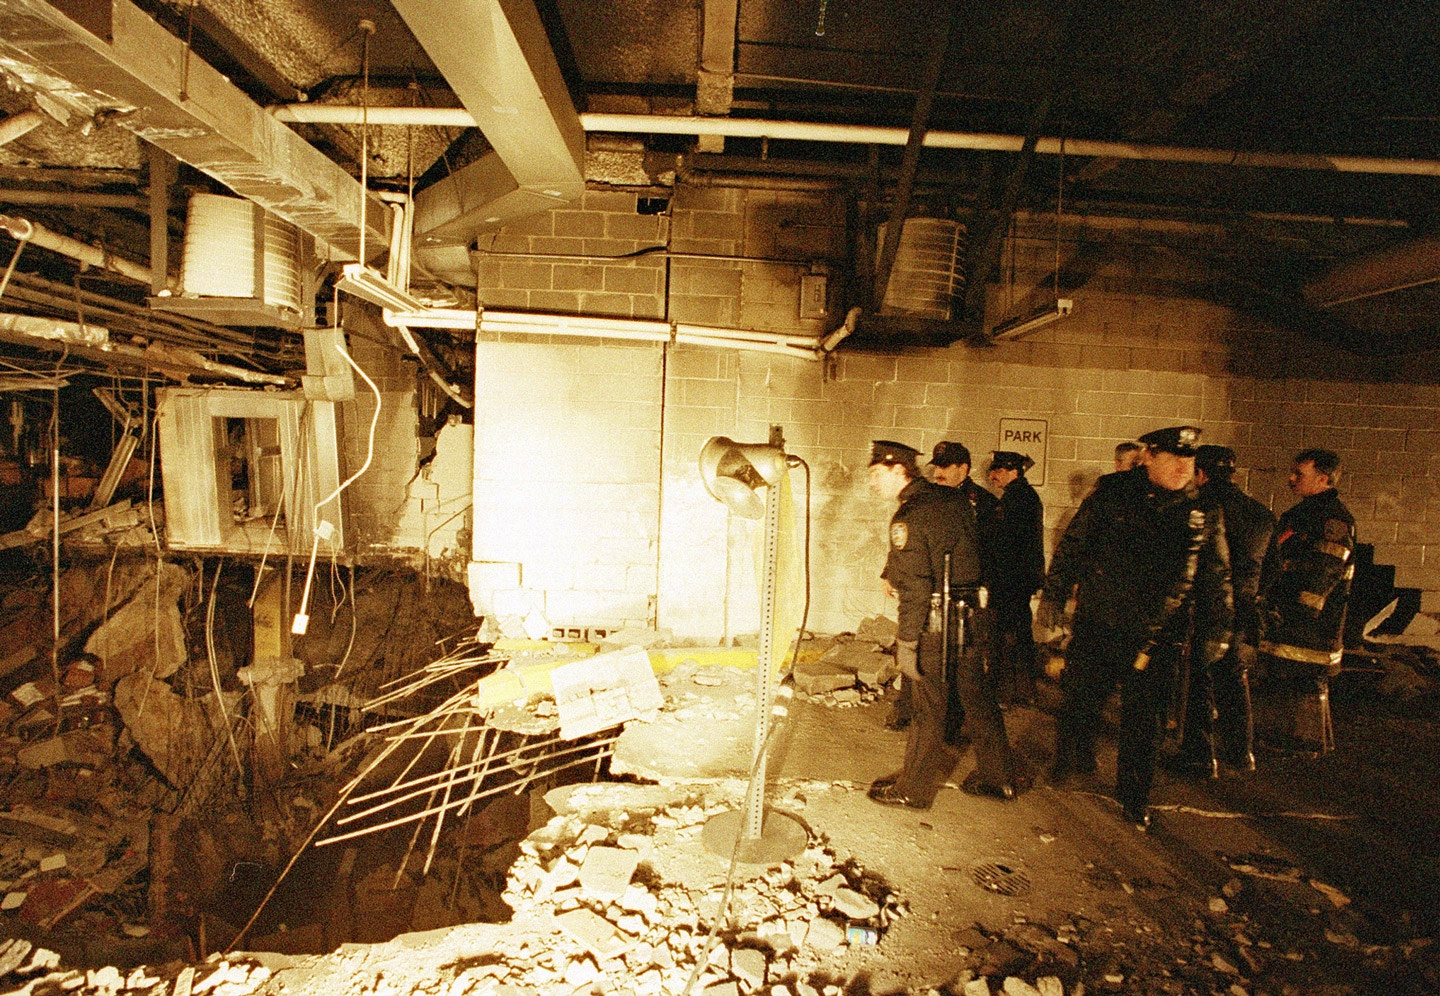 Police and firefighters inspect the bomb crator inside an underground parking garage of New York's World Trade Center the day after an explosion tore through it, Feb. 27, 1993.